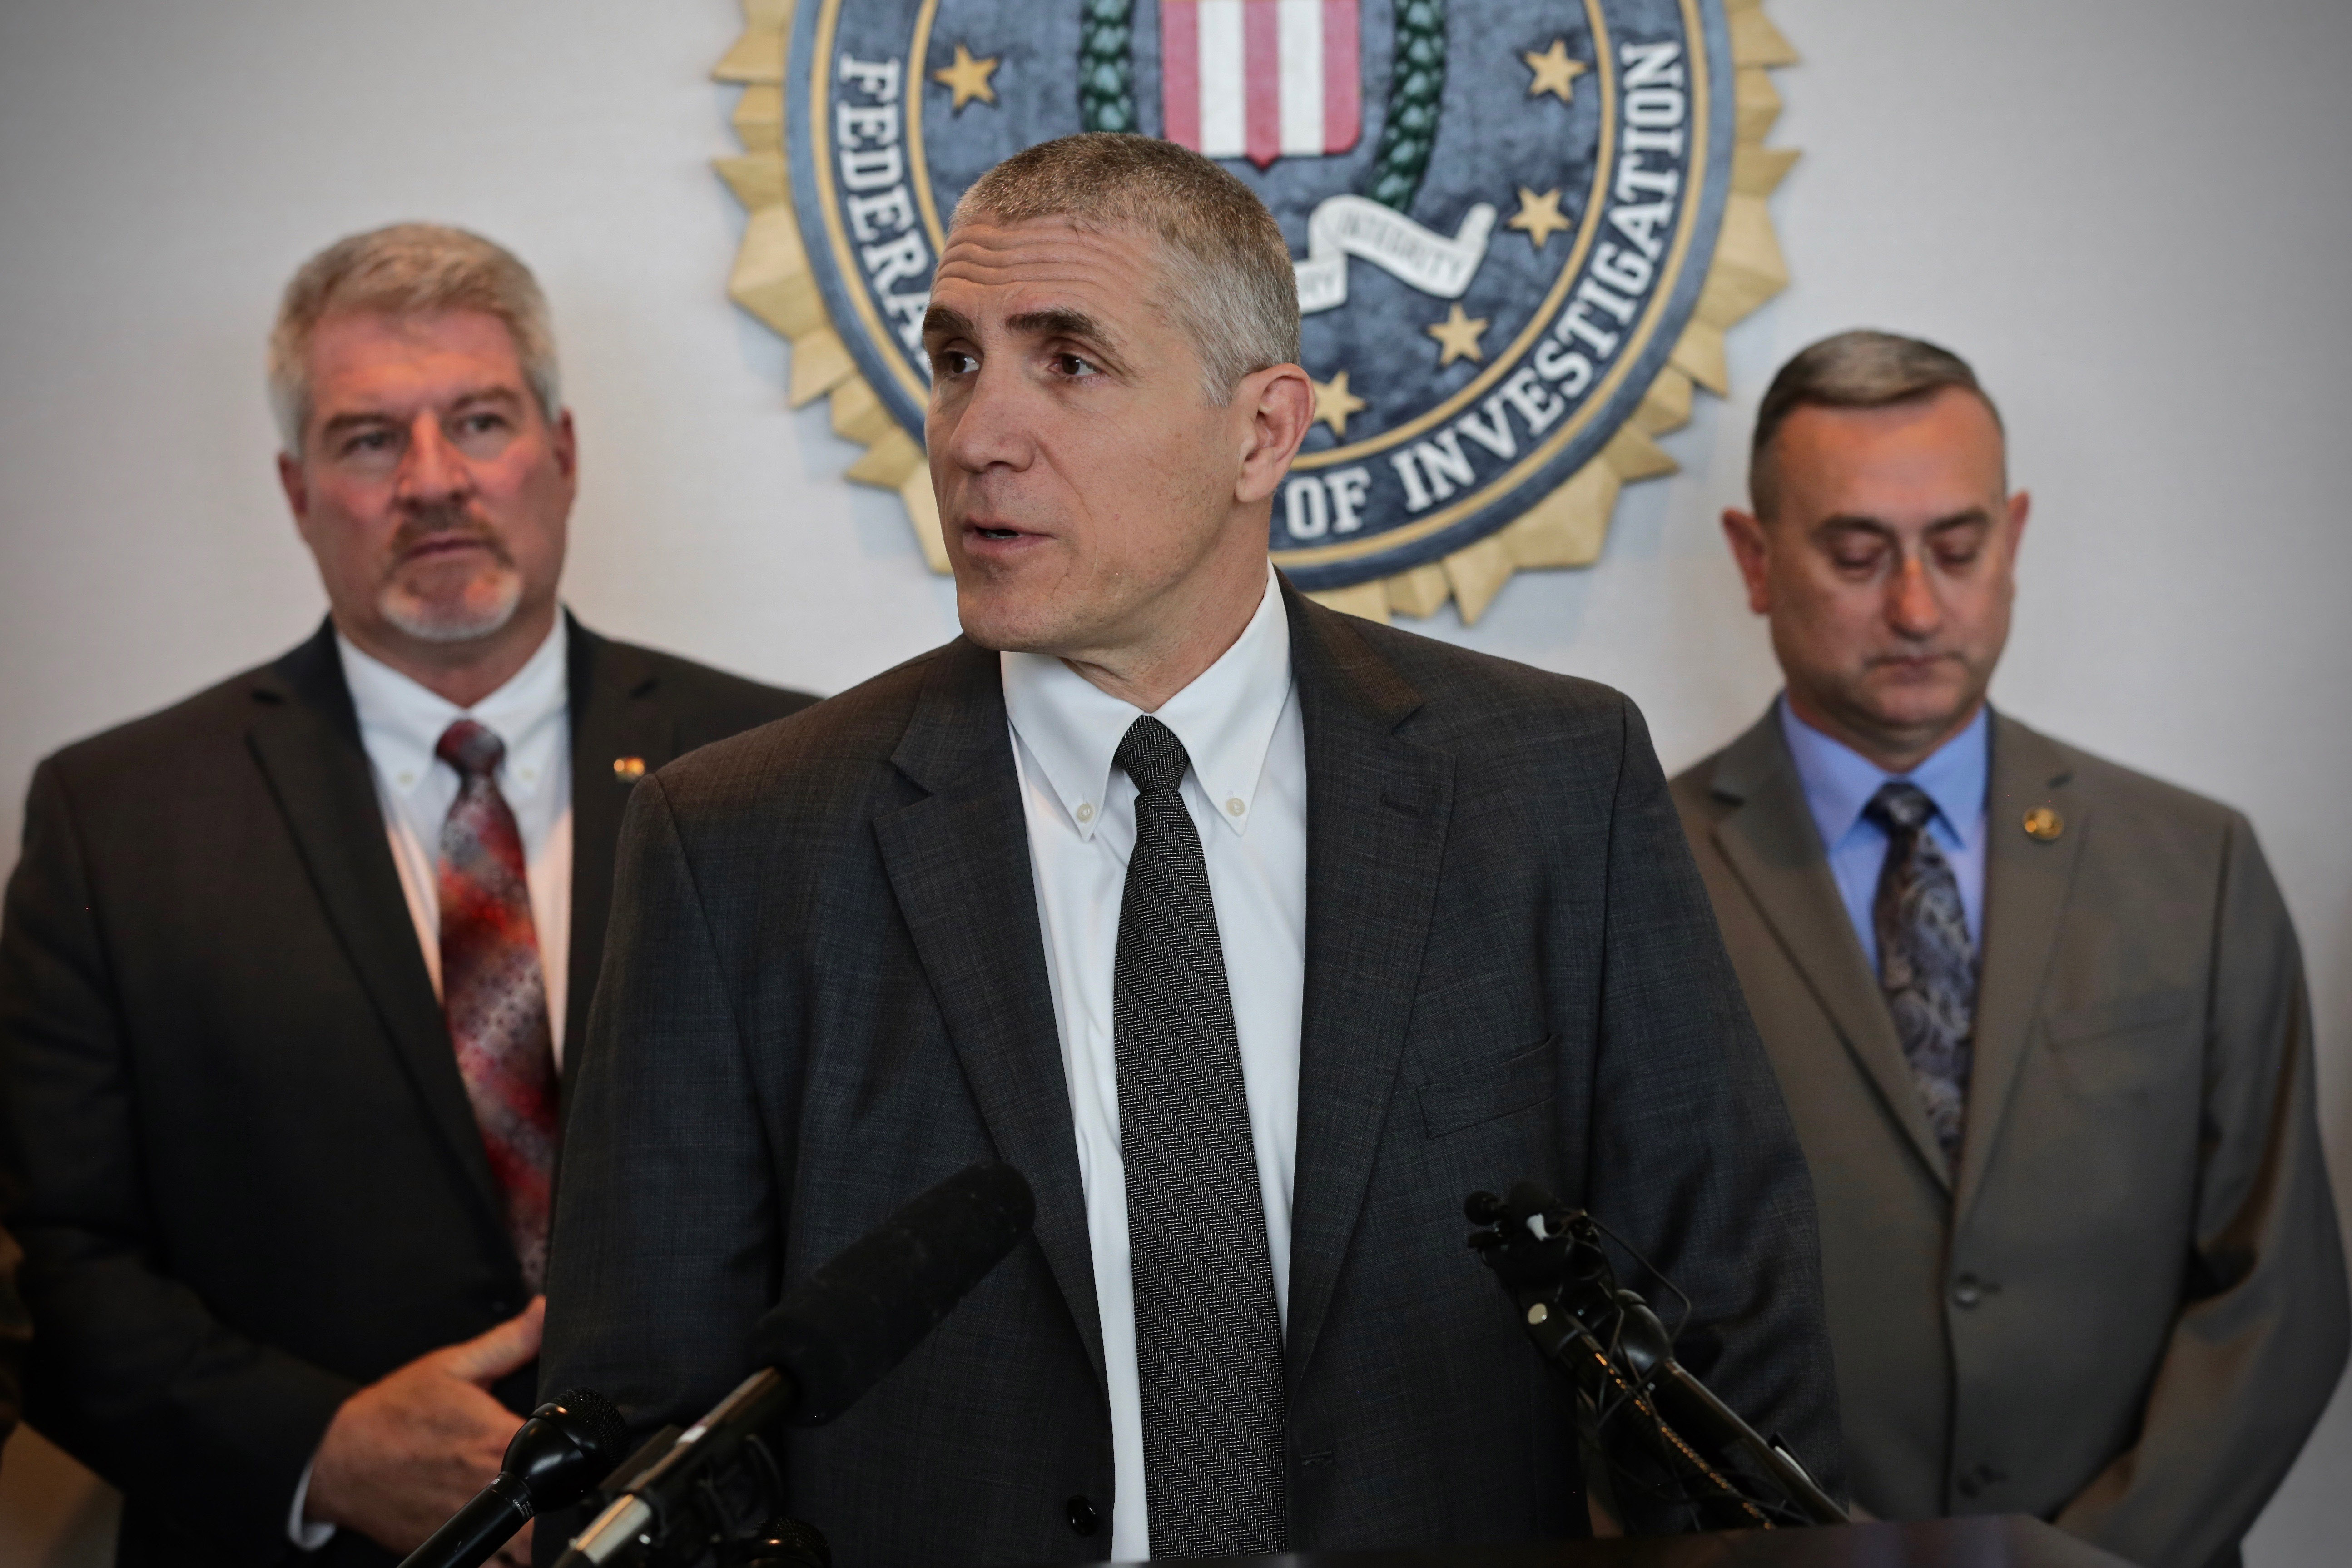 <p>FBI Special Agent in Charge Dean Phillips talks to reporters at the agency's Denver field office about the tips that put them on the trail of Sol Pais of Florida, and how authorities eventually found her body near Echo Lake below MountEvans, April 17, 2019.</p>